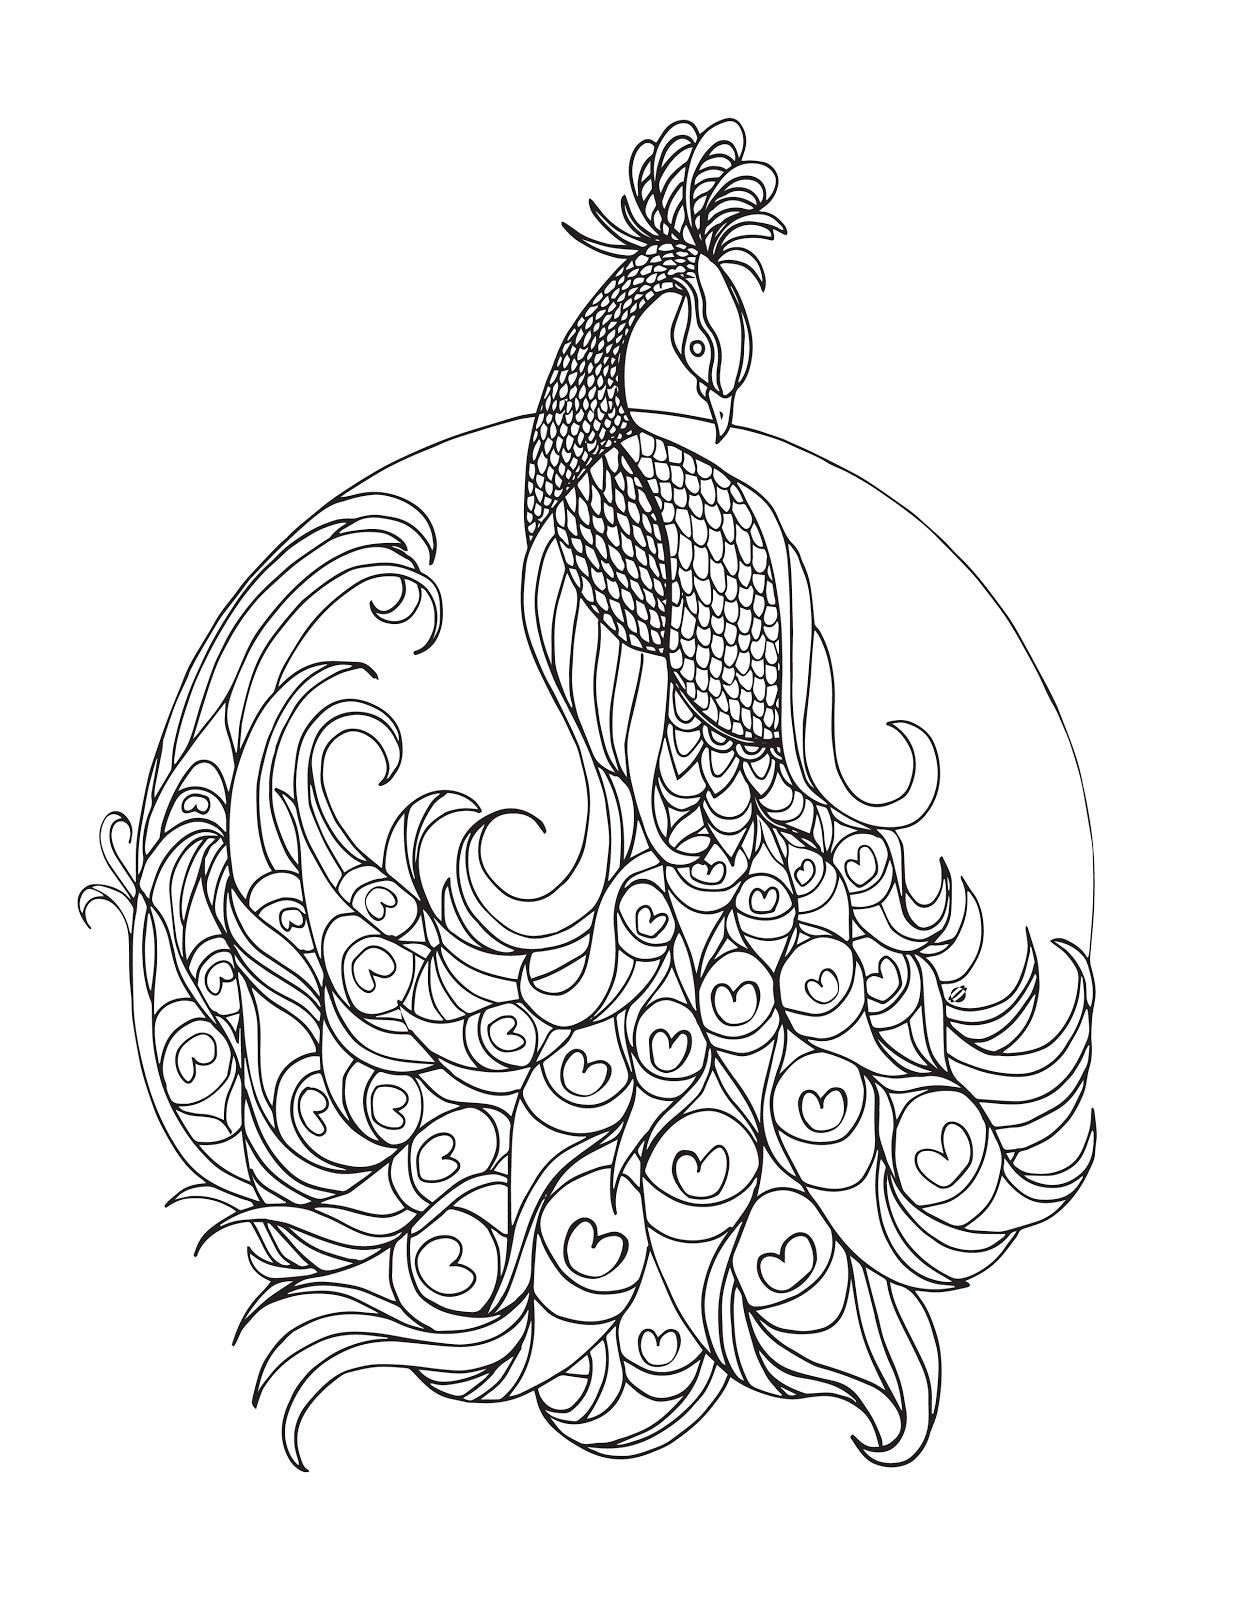 Coloring book grown up - Coloring For Adults Adult Coloring Pages Coloring Books Paisley Art Peacock Cake Line Art Art Google Anti Stress Parchment Craft